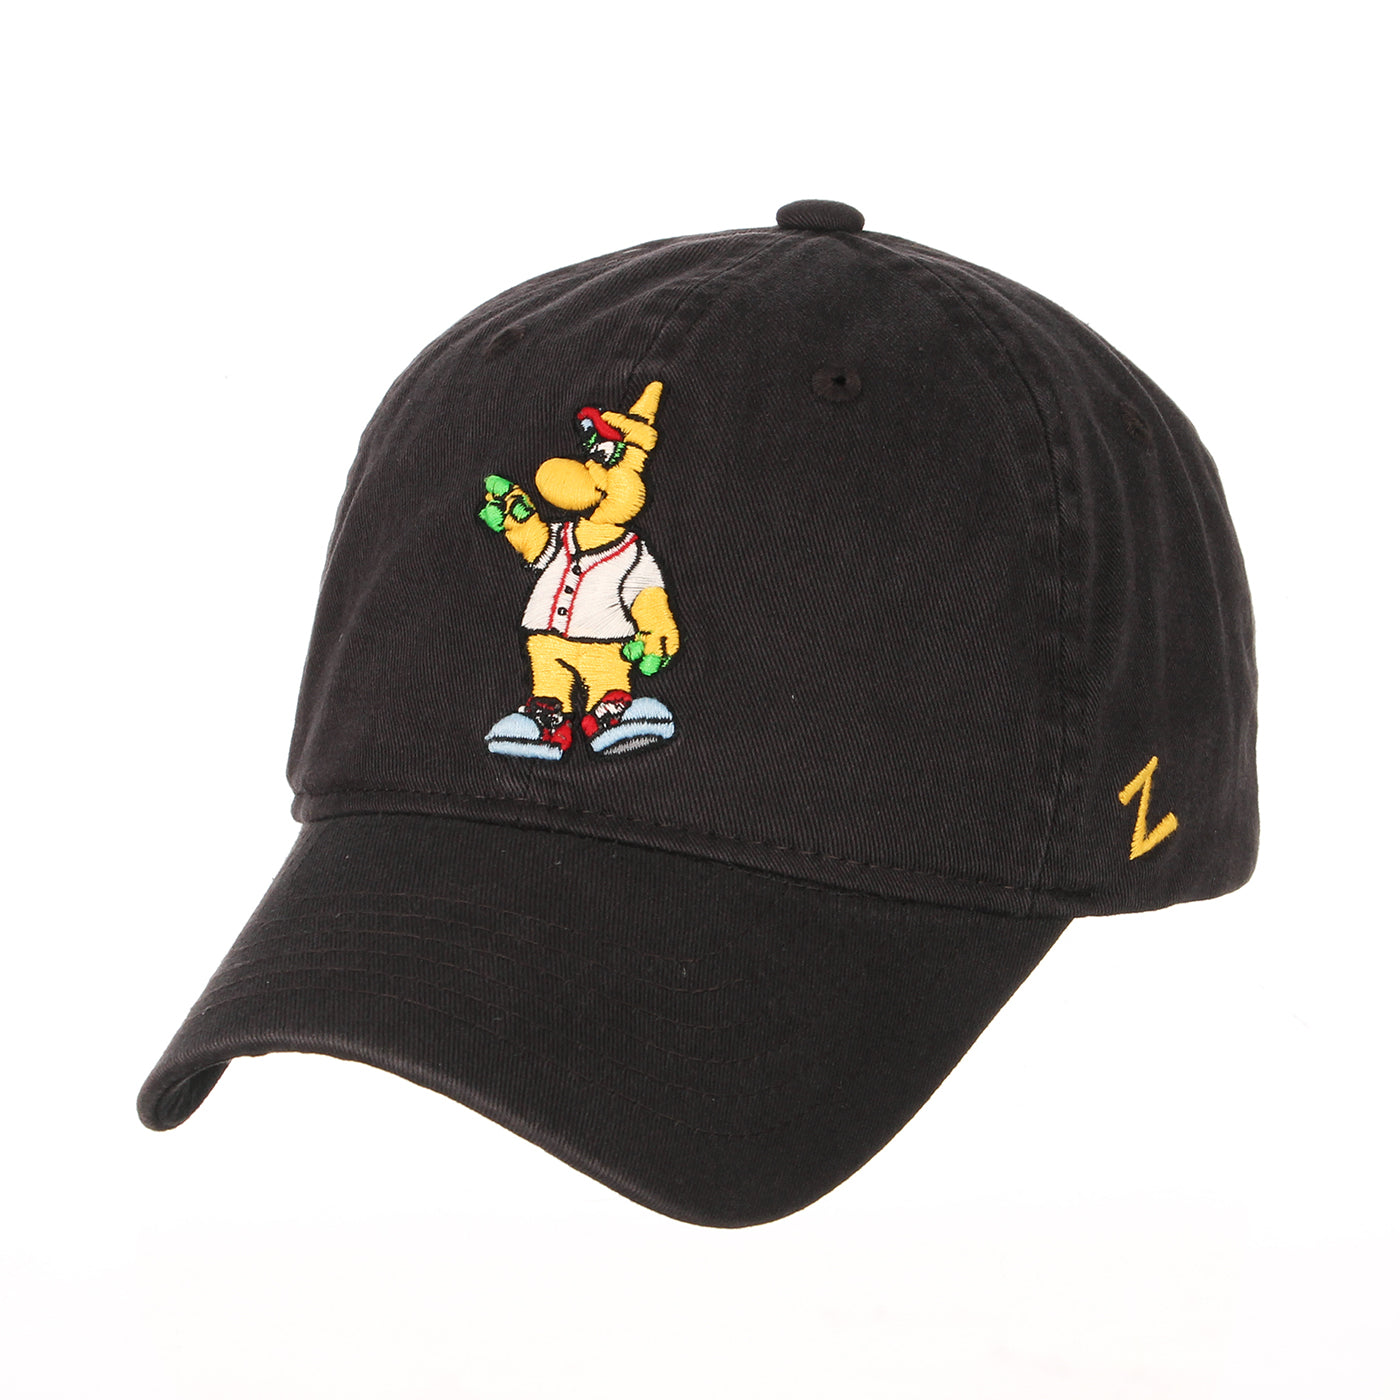 Chicago Dogs Zephyr Mascot Adjustable Slouch Hat - Black - Chicago Dogs Team Store